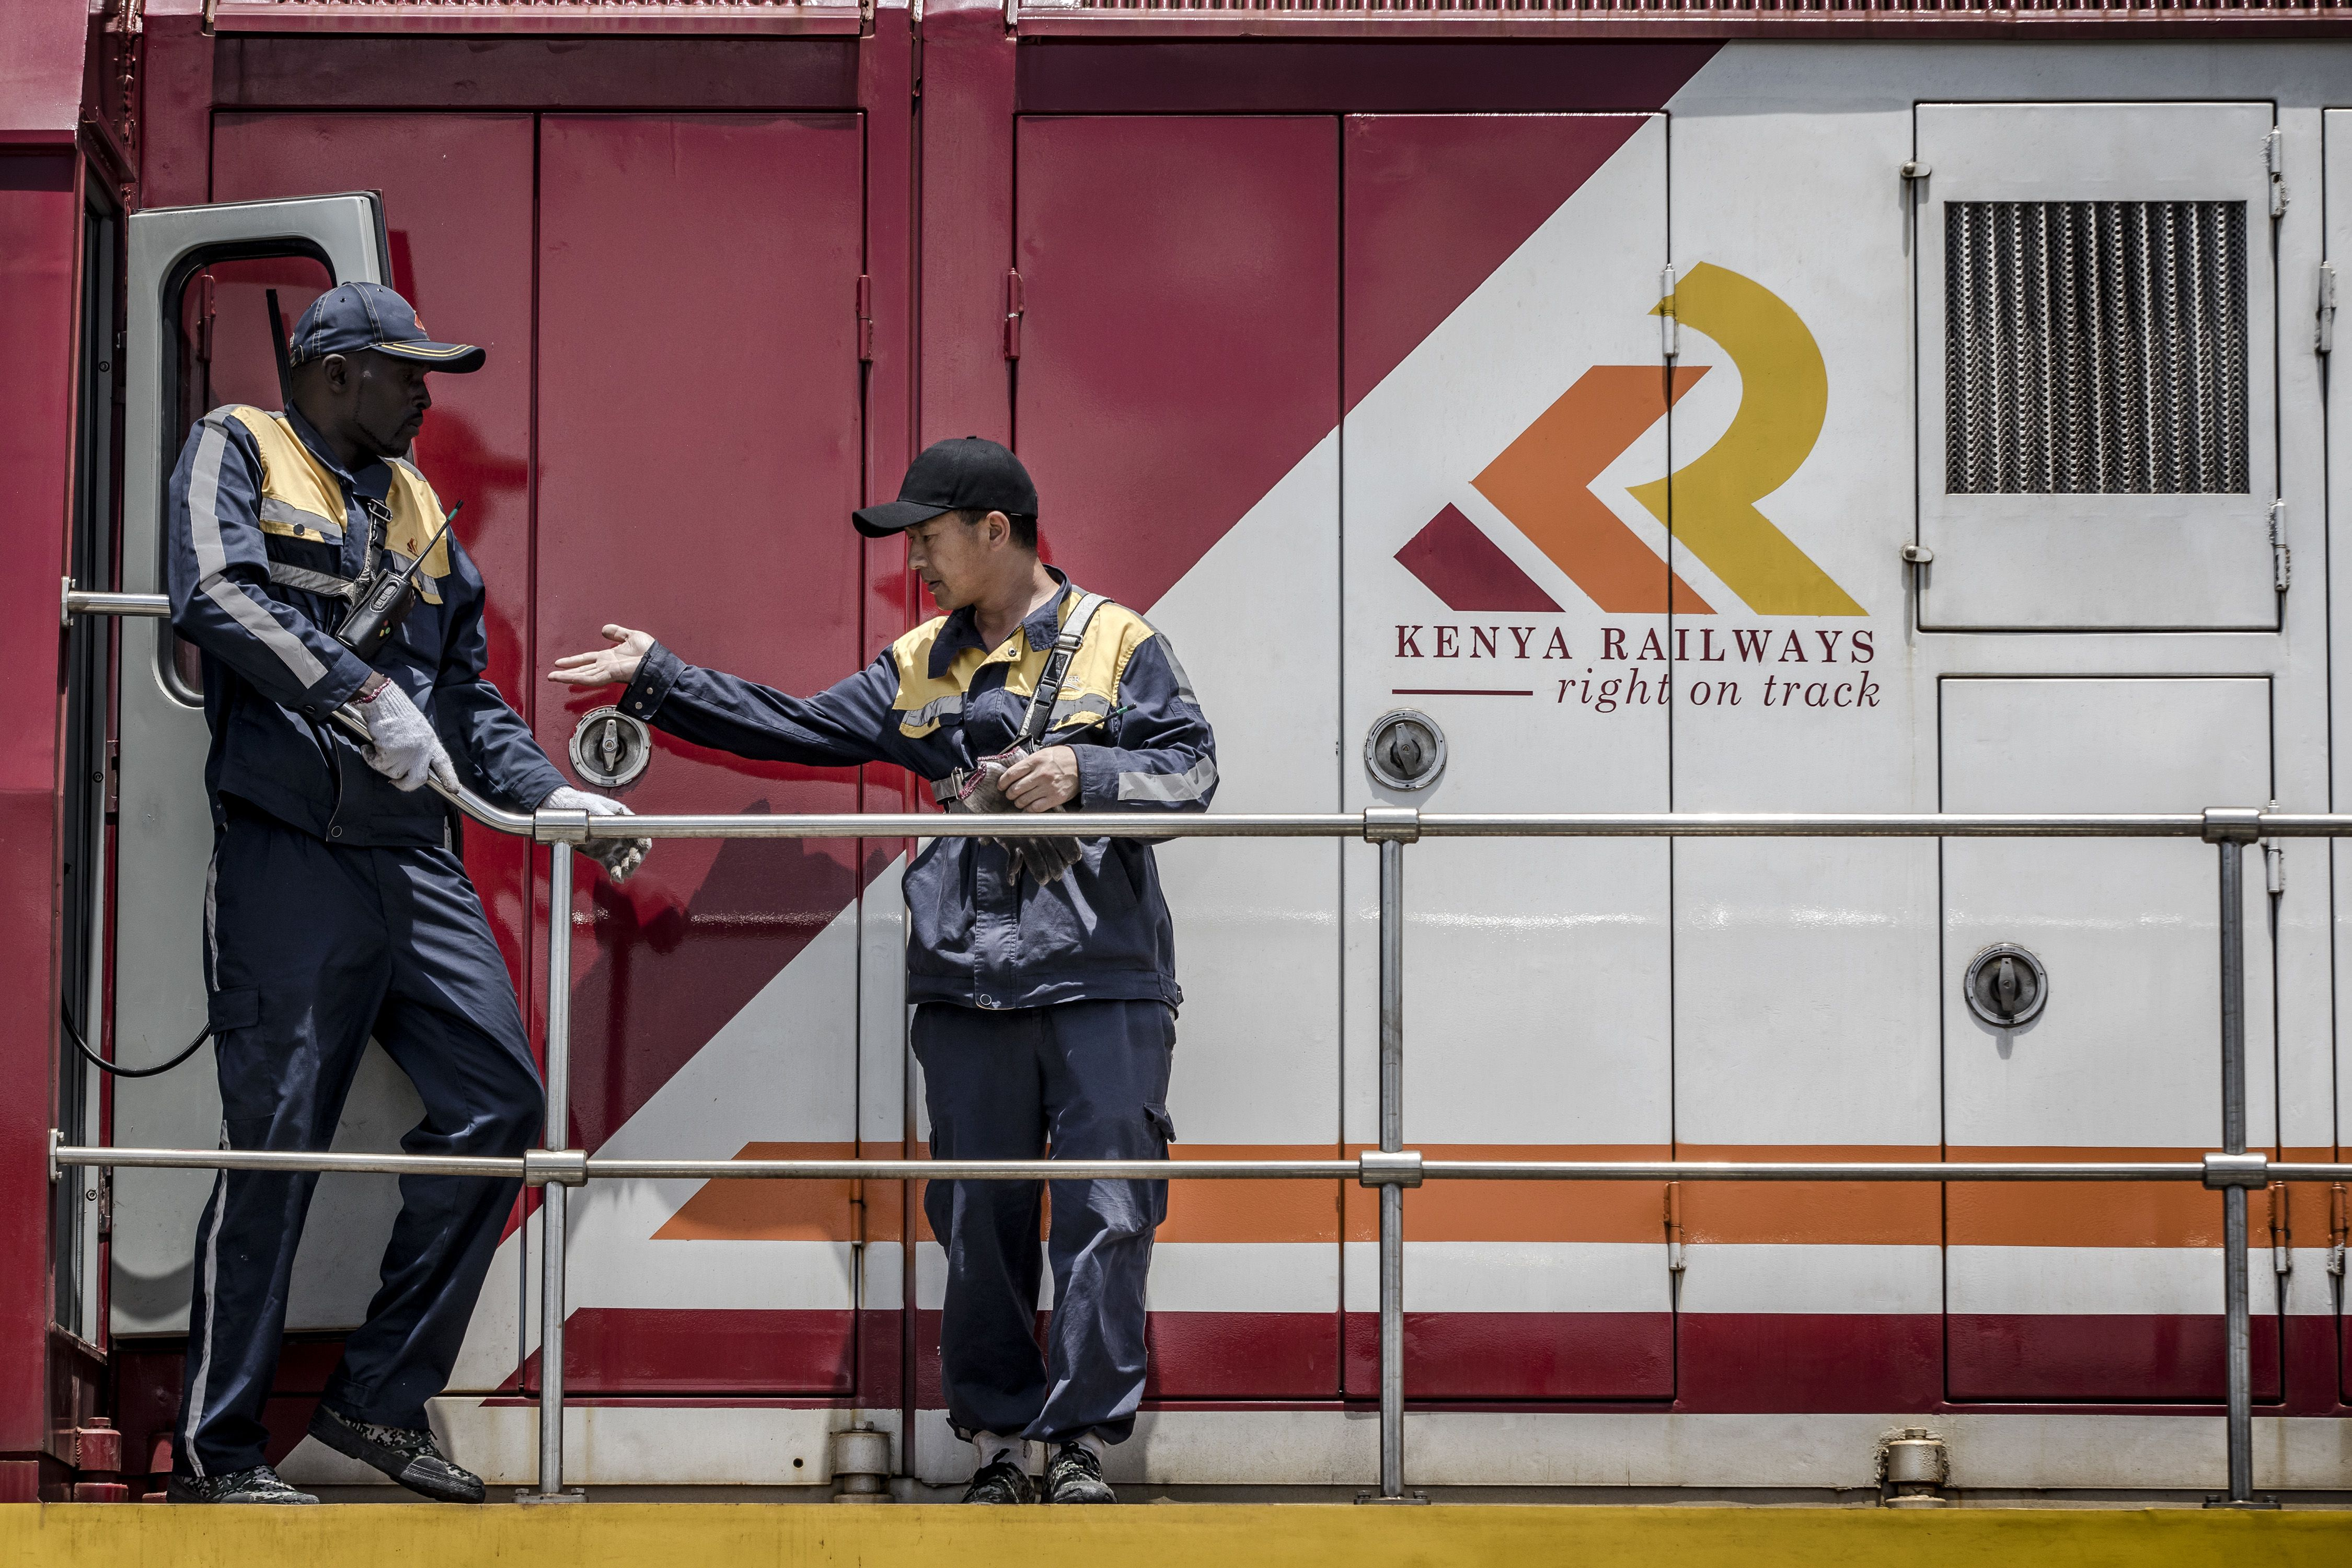 China signs MOU with finance giant Switzerland on Belt and Road